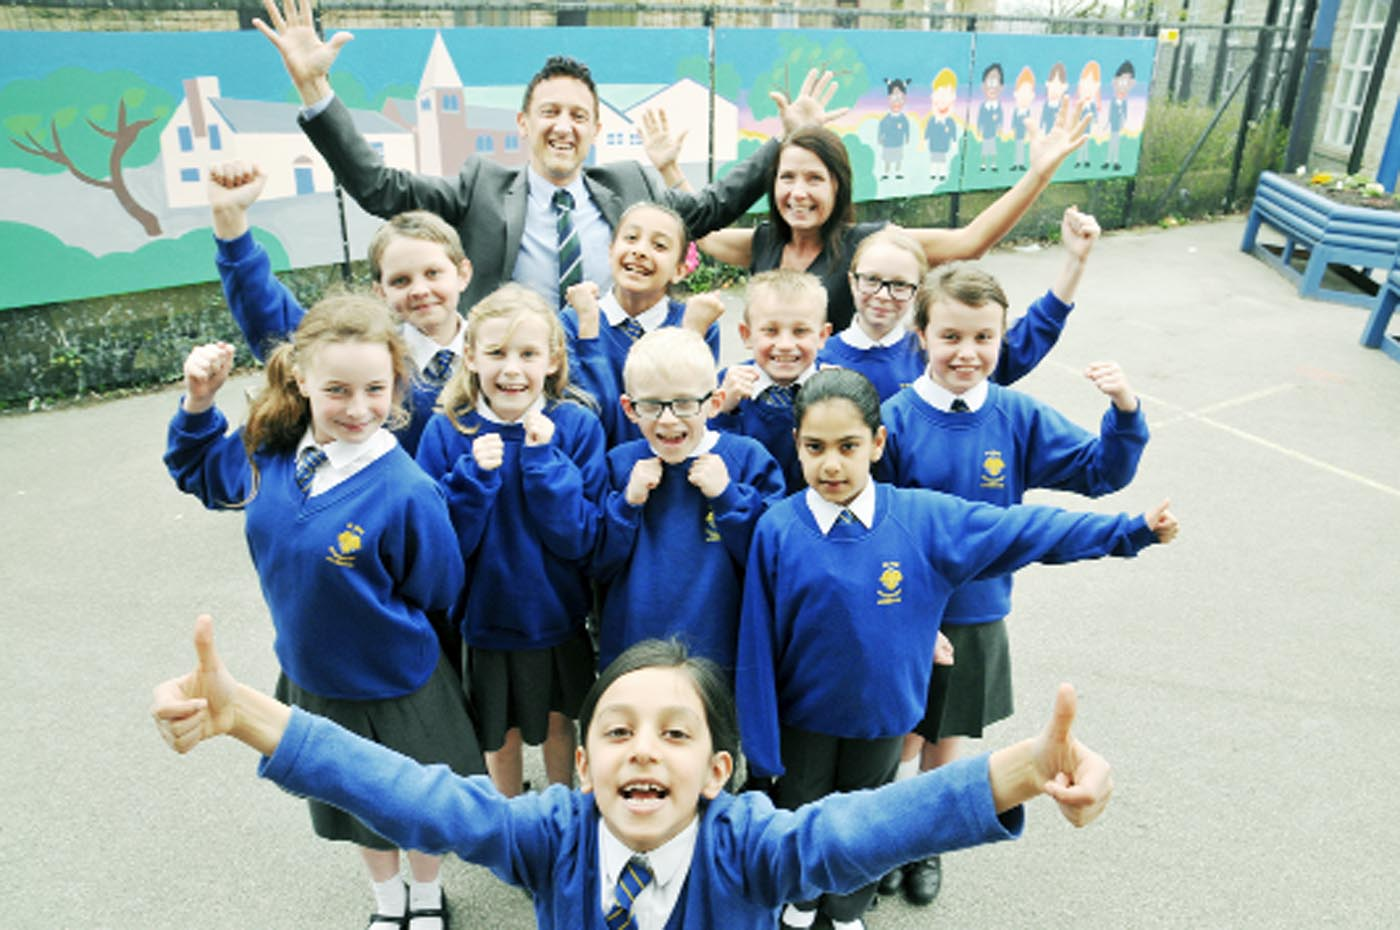 Maya Ahmed, front, leads the way with the school council, head Mark Proctor and school council leader Aileen Massey